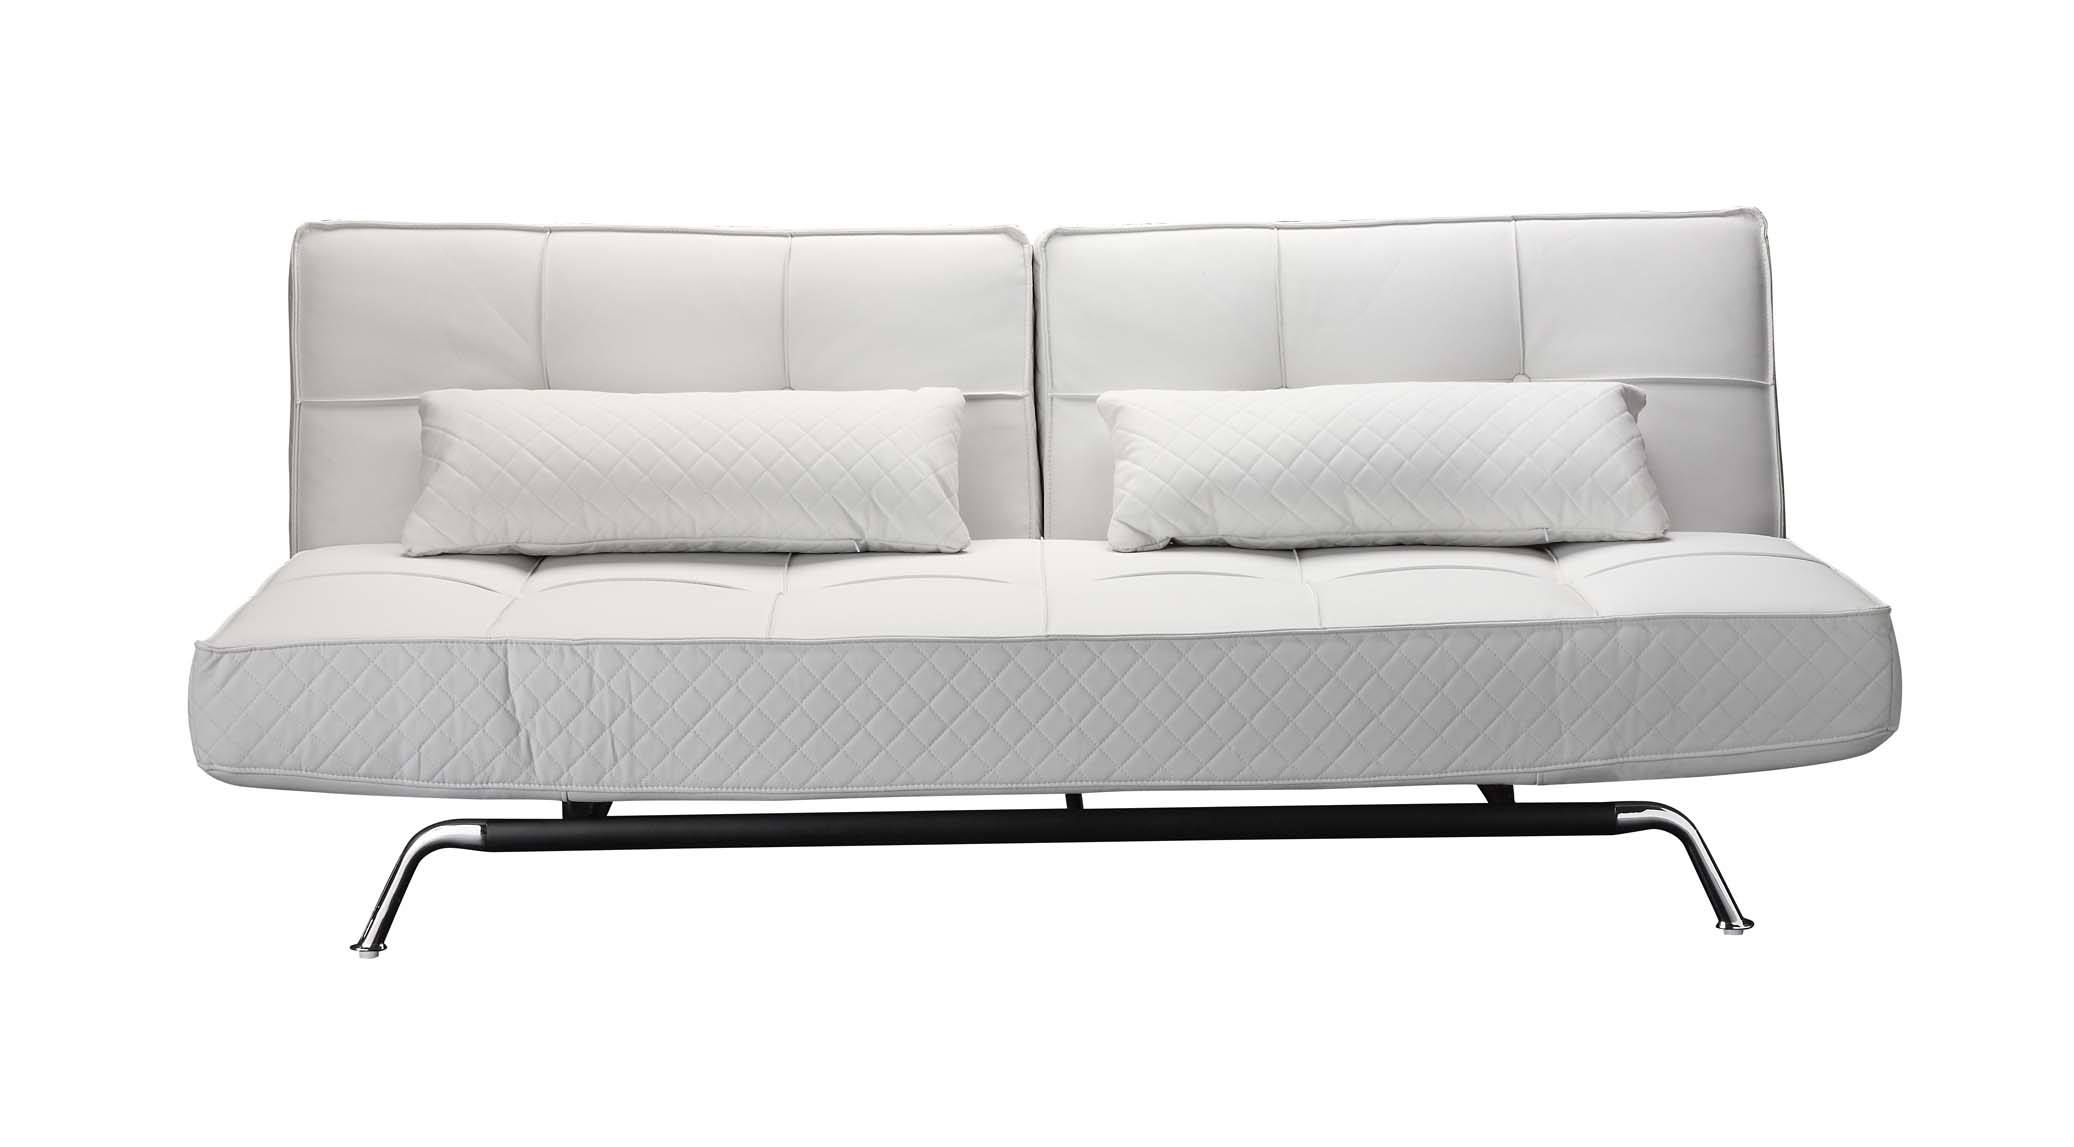 Amazing White Modern Sofa 24 In Contemporary Sofa Inspiration with White Modern Sofa